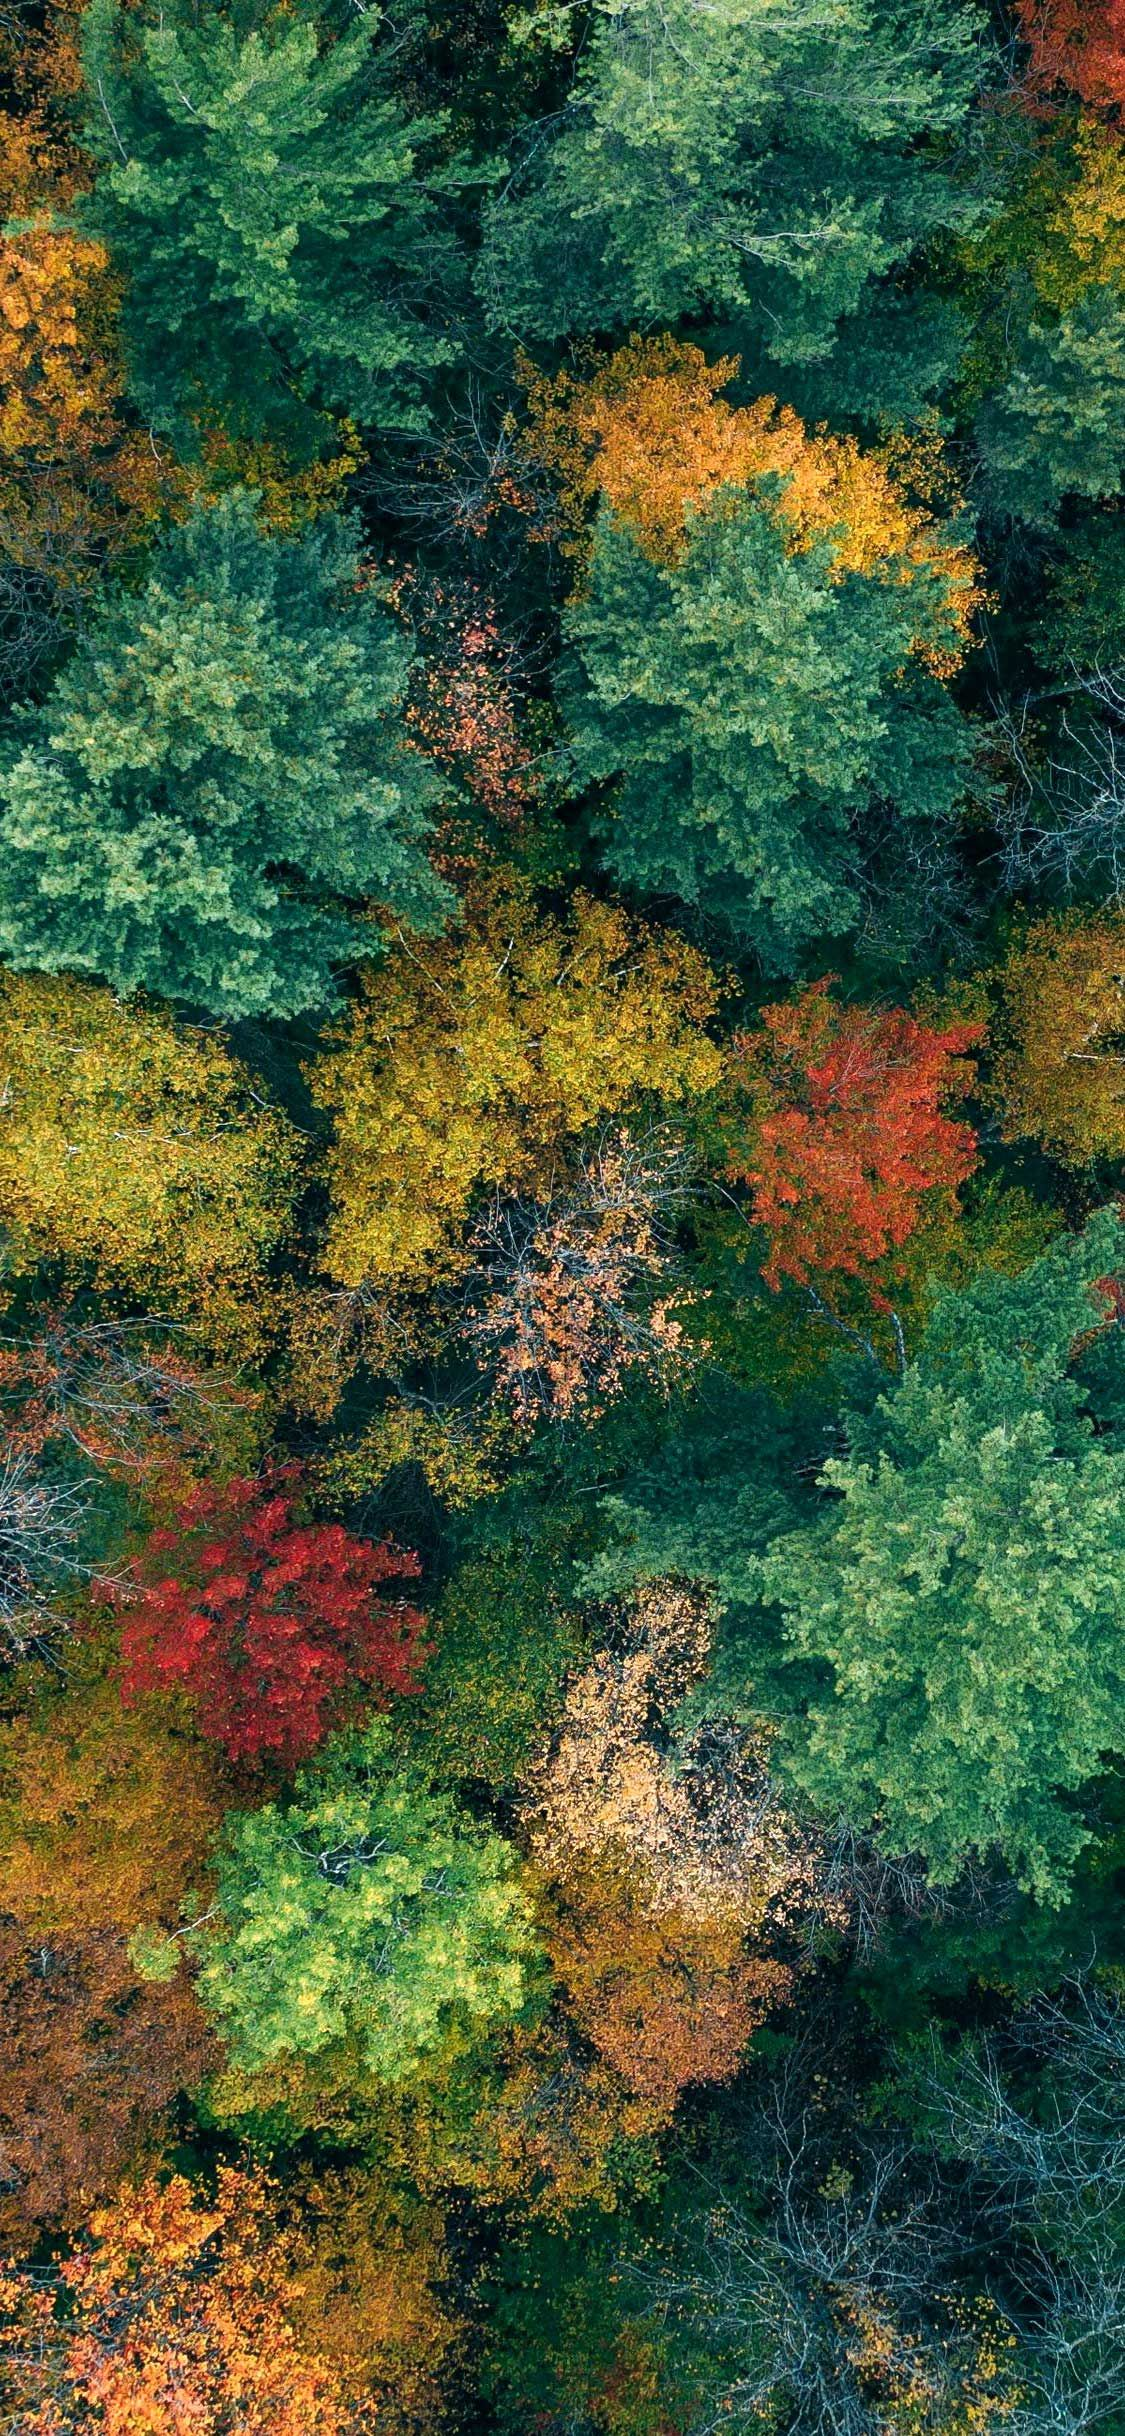 Iphone X Wallpaper Trees aerial view autumn Hd in 2020